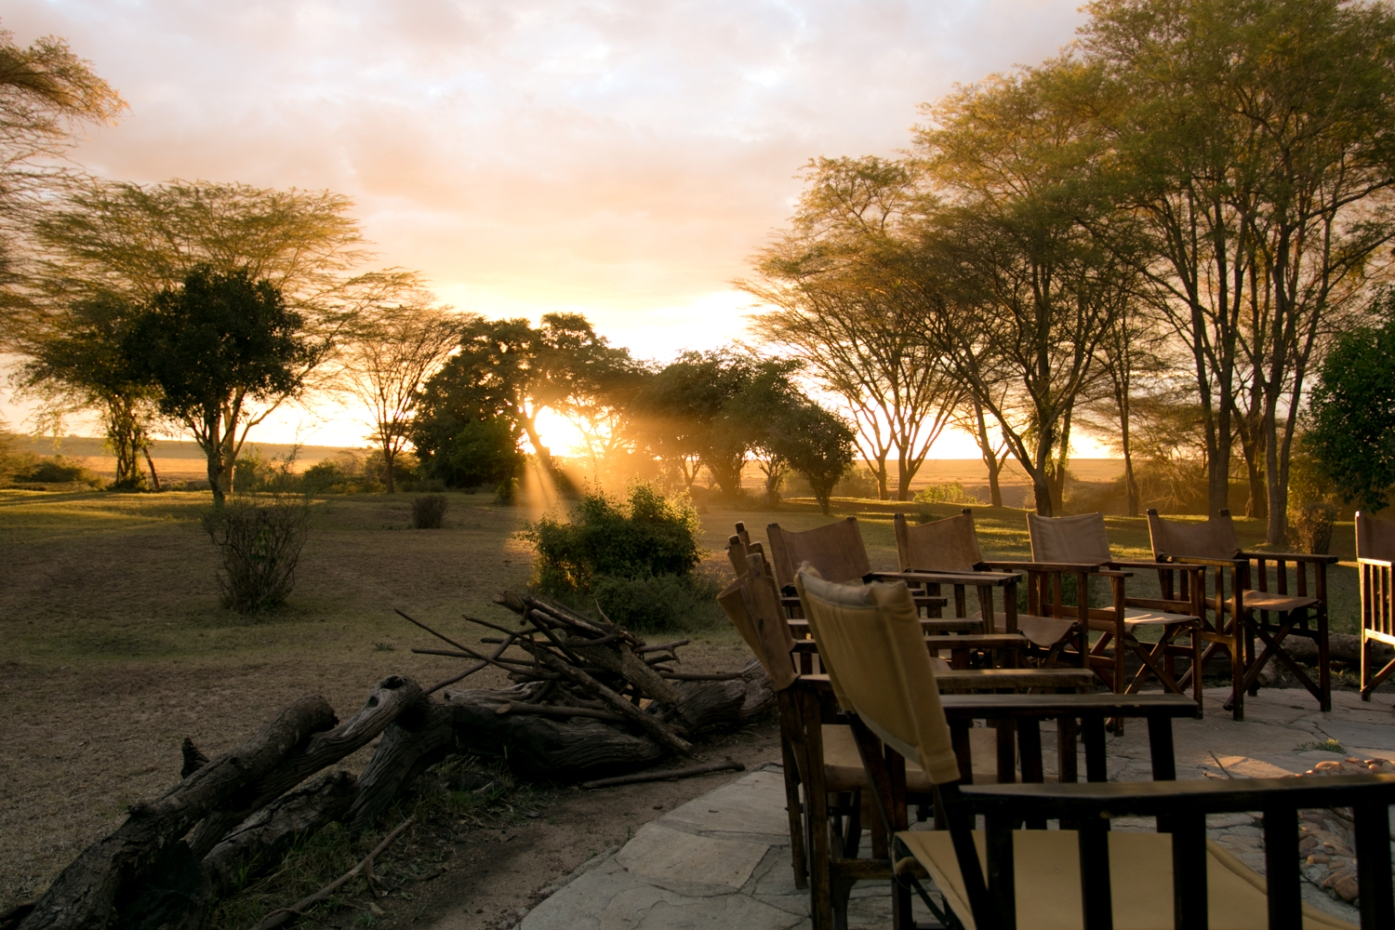 Sunrise at Basecamp Masai Mara